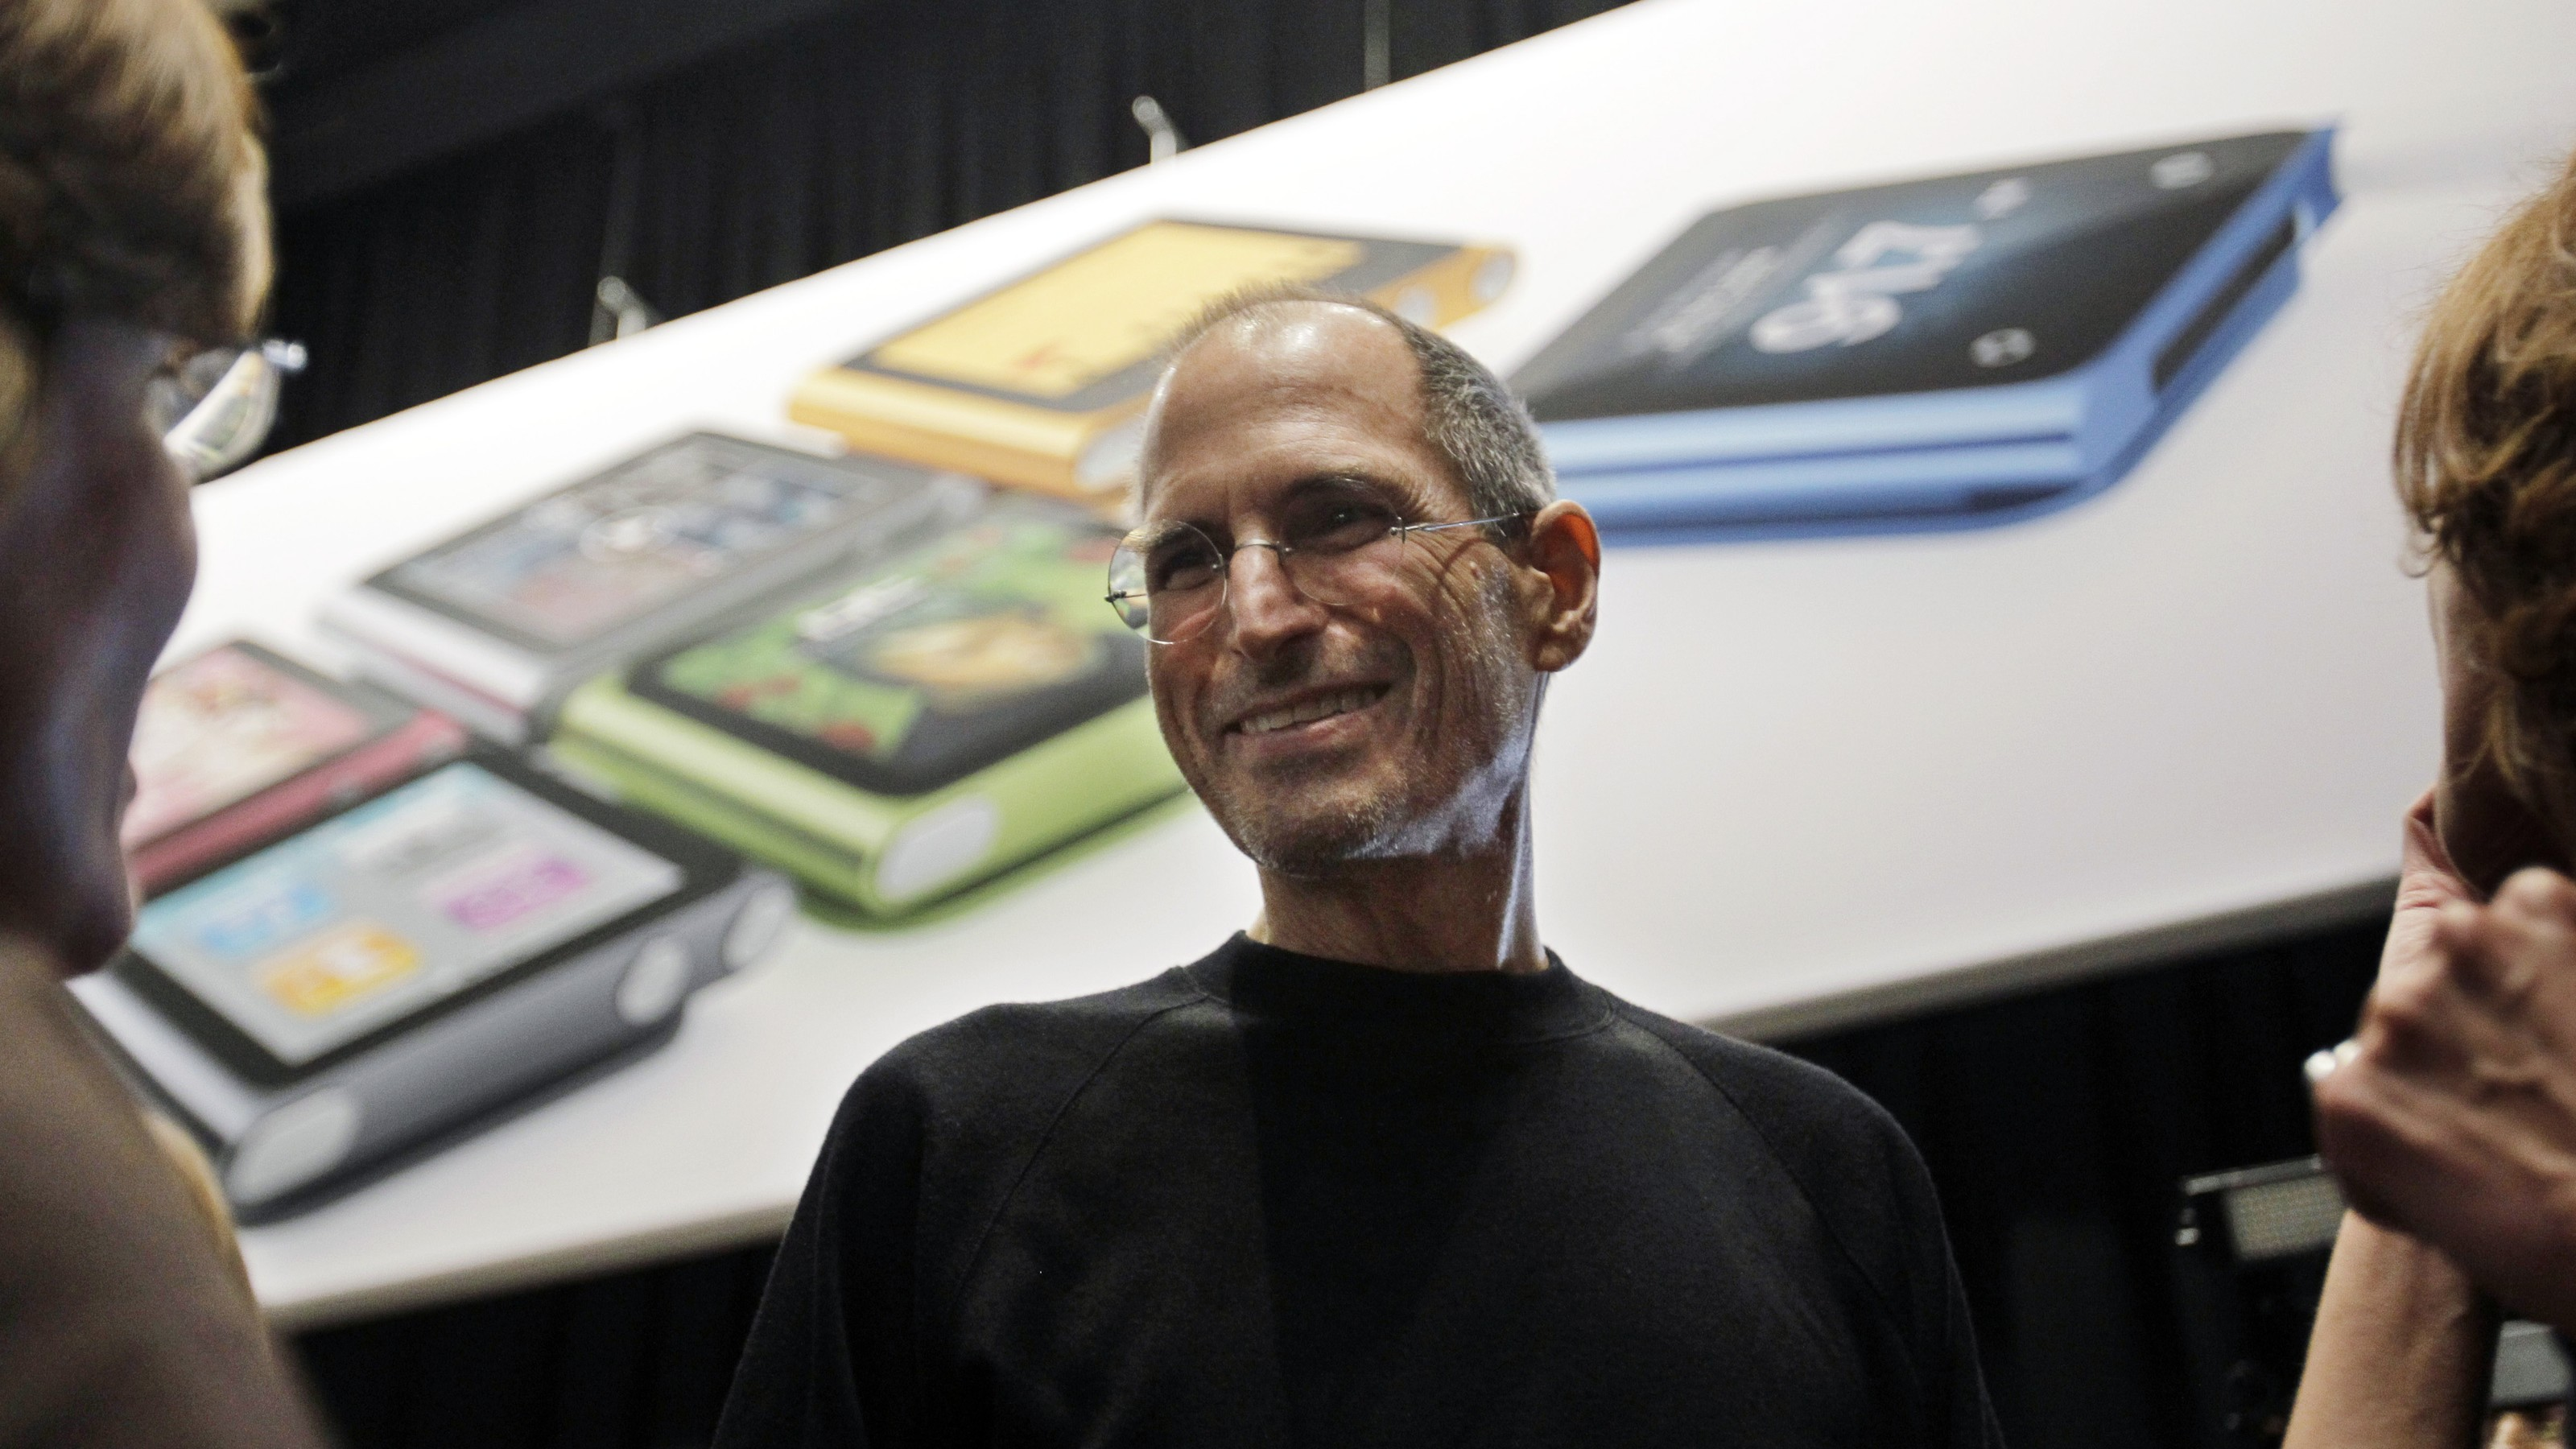 Apple CEO Steve Jobs smiles in front of an iPod Shuffle poster, Wednesday, Sept. 1, 2010, in San Francisco. (AP Photo/Paul Sakuma)